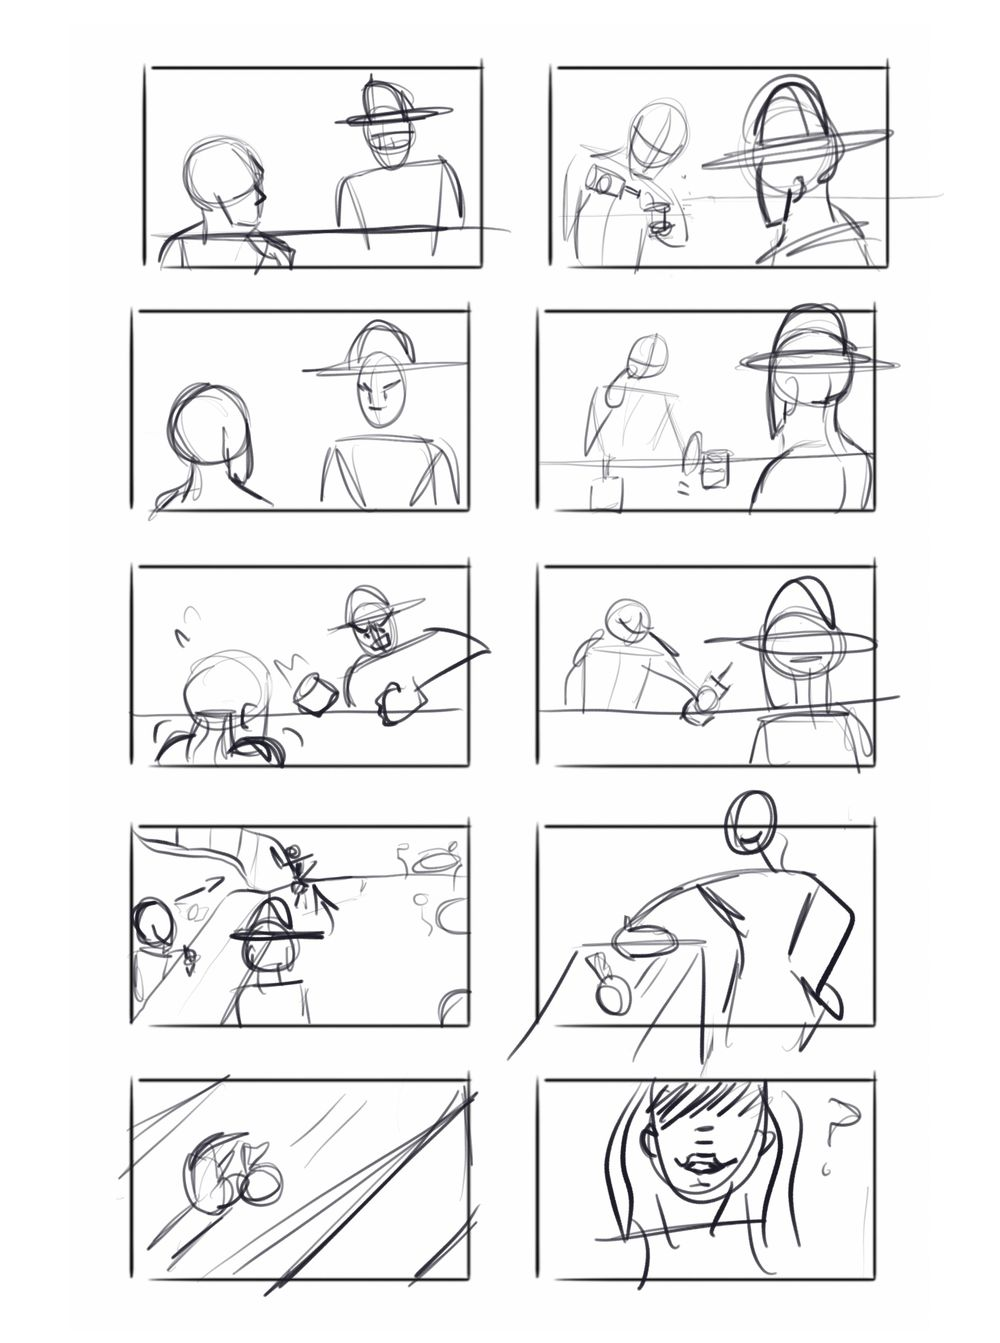 Storyboard class - image 5 - student project